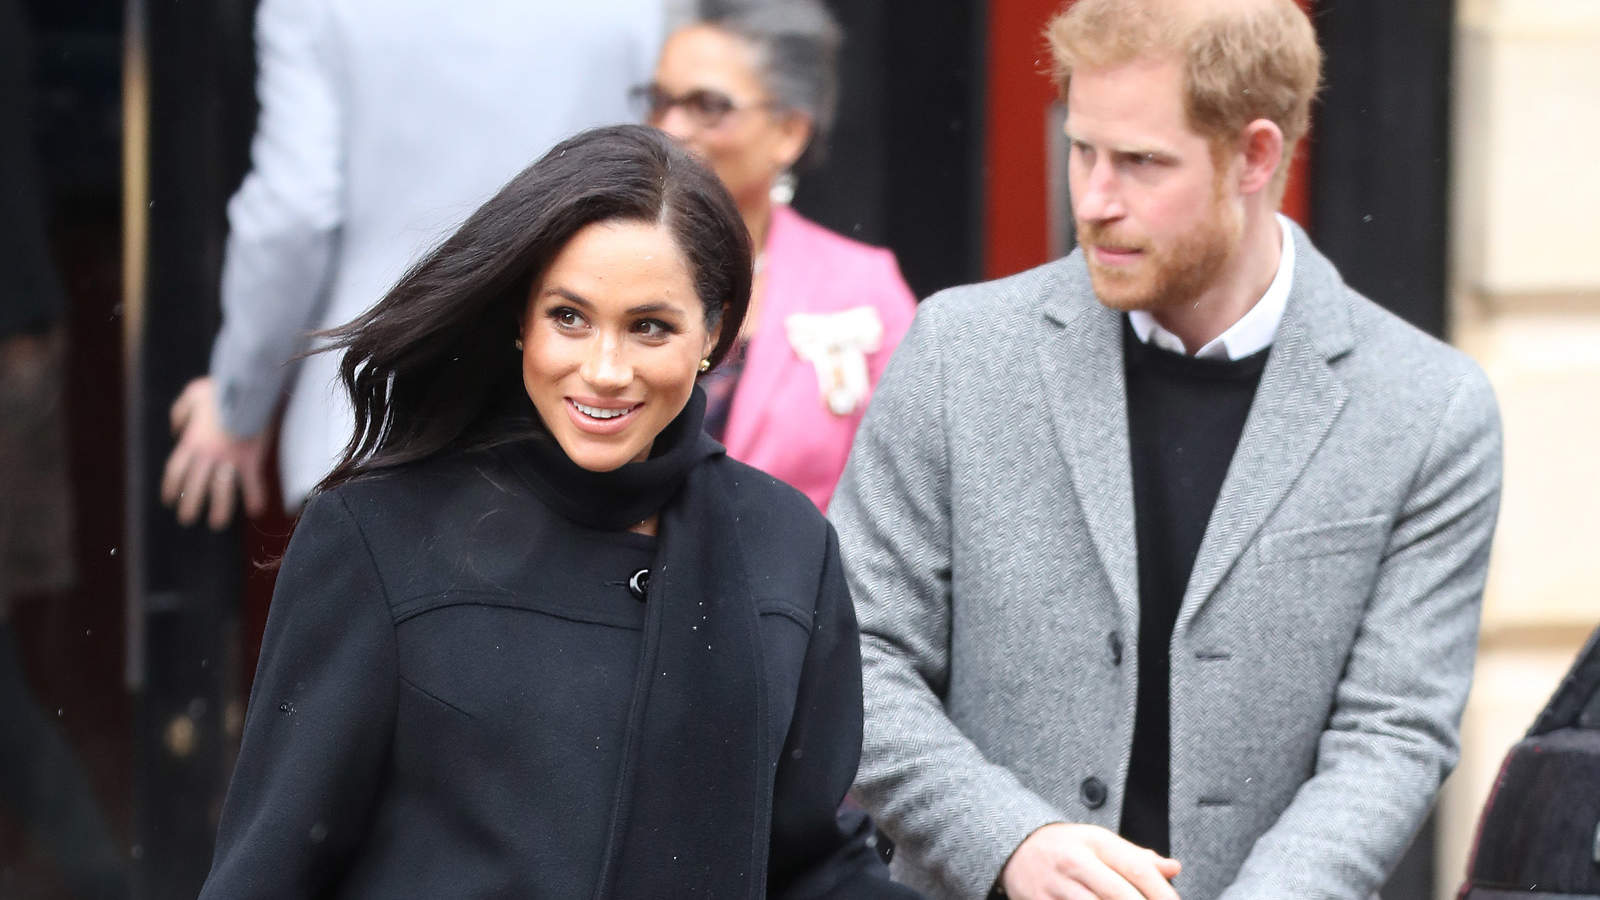 Meghan Markle Just Wore the Boots You Need to Survive Winter